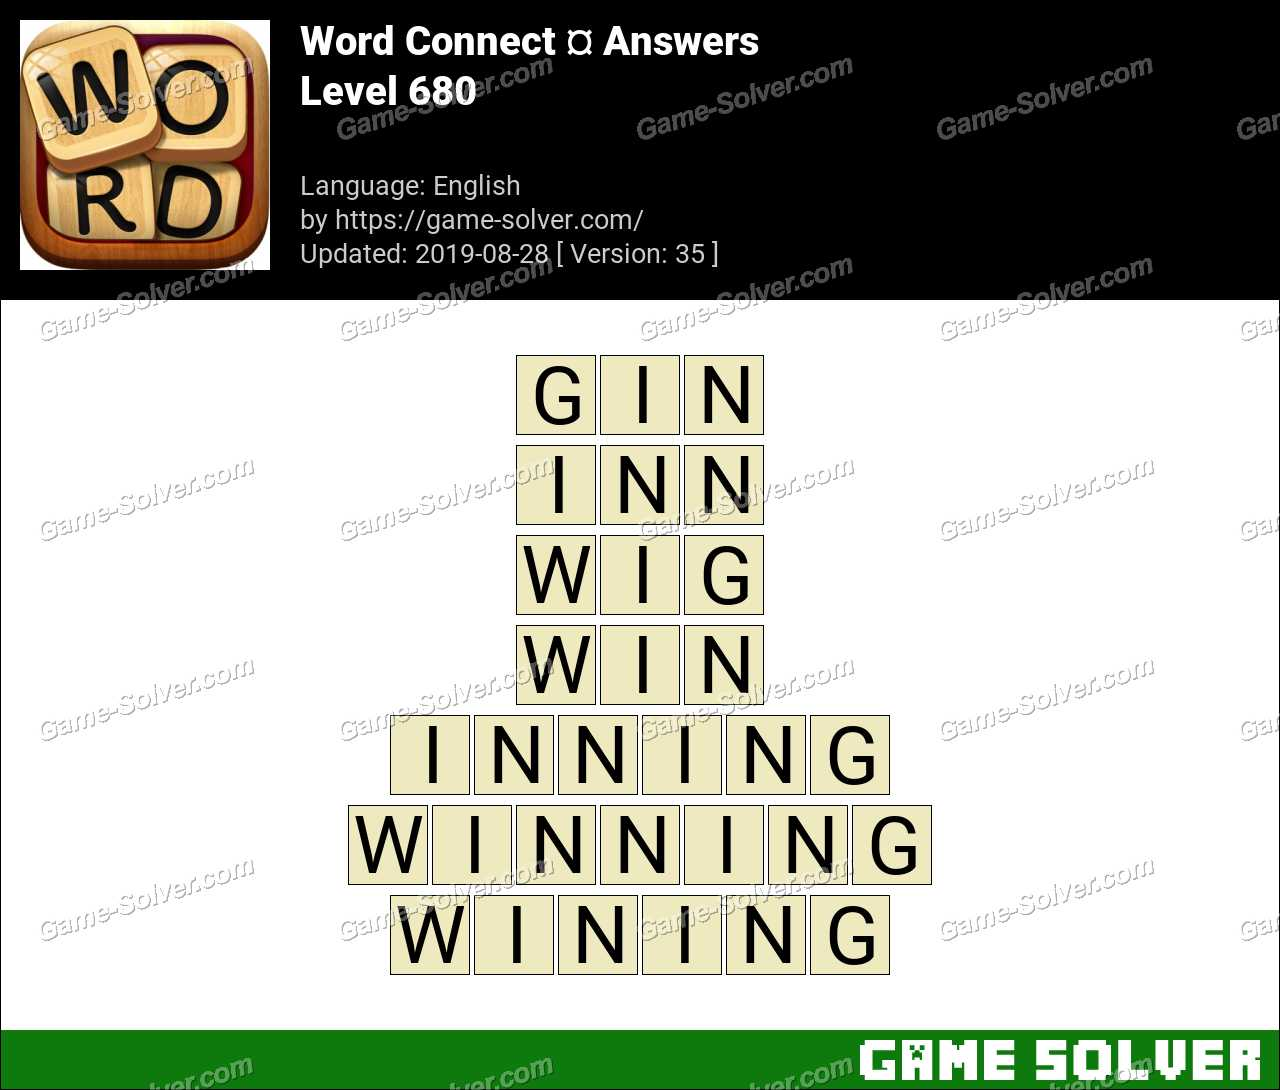 Word Connect Level 680 Answers